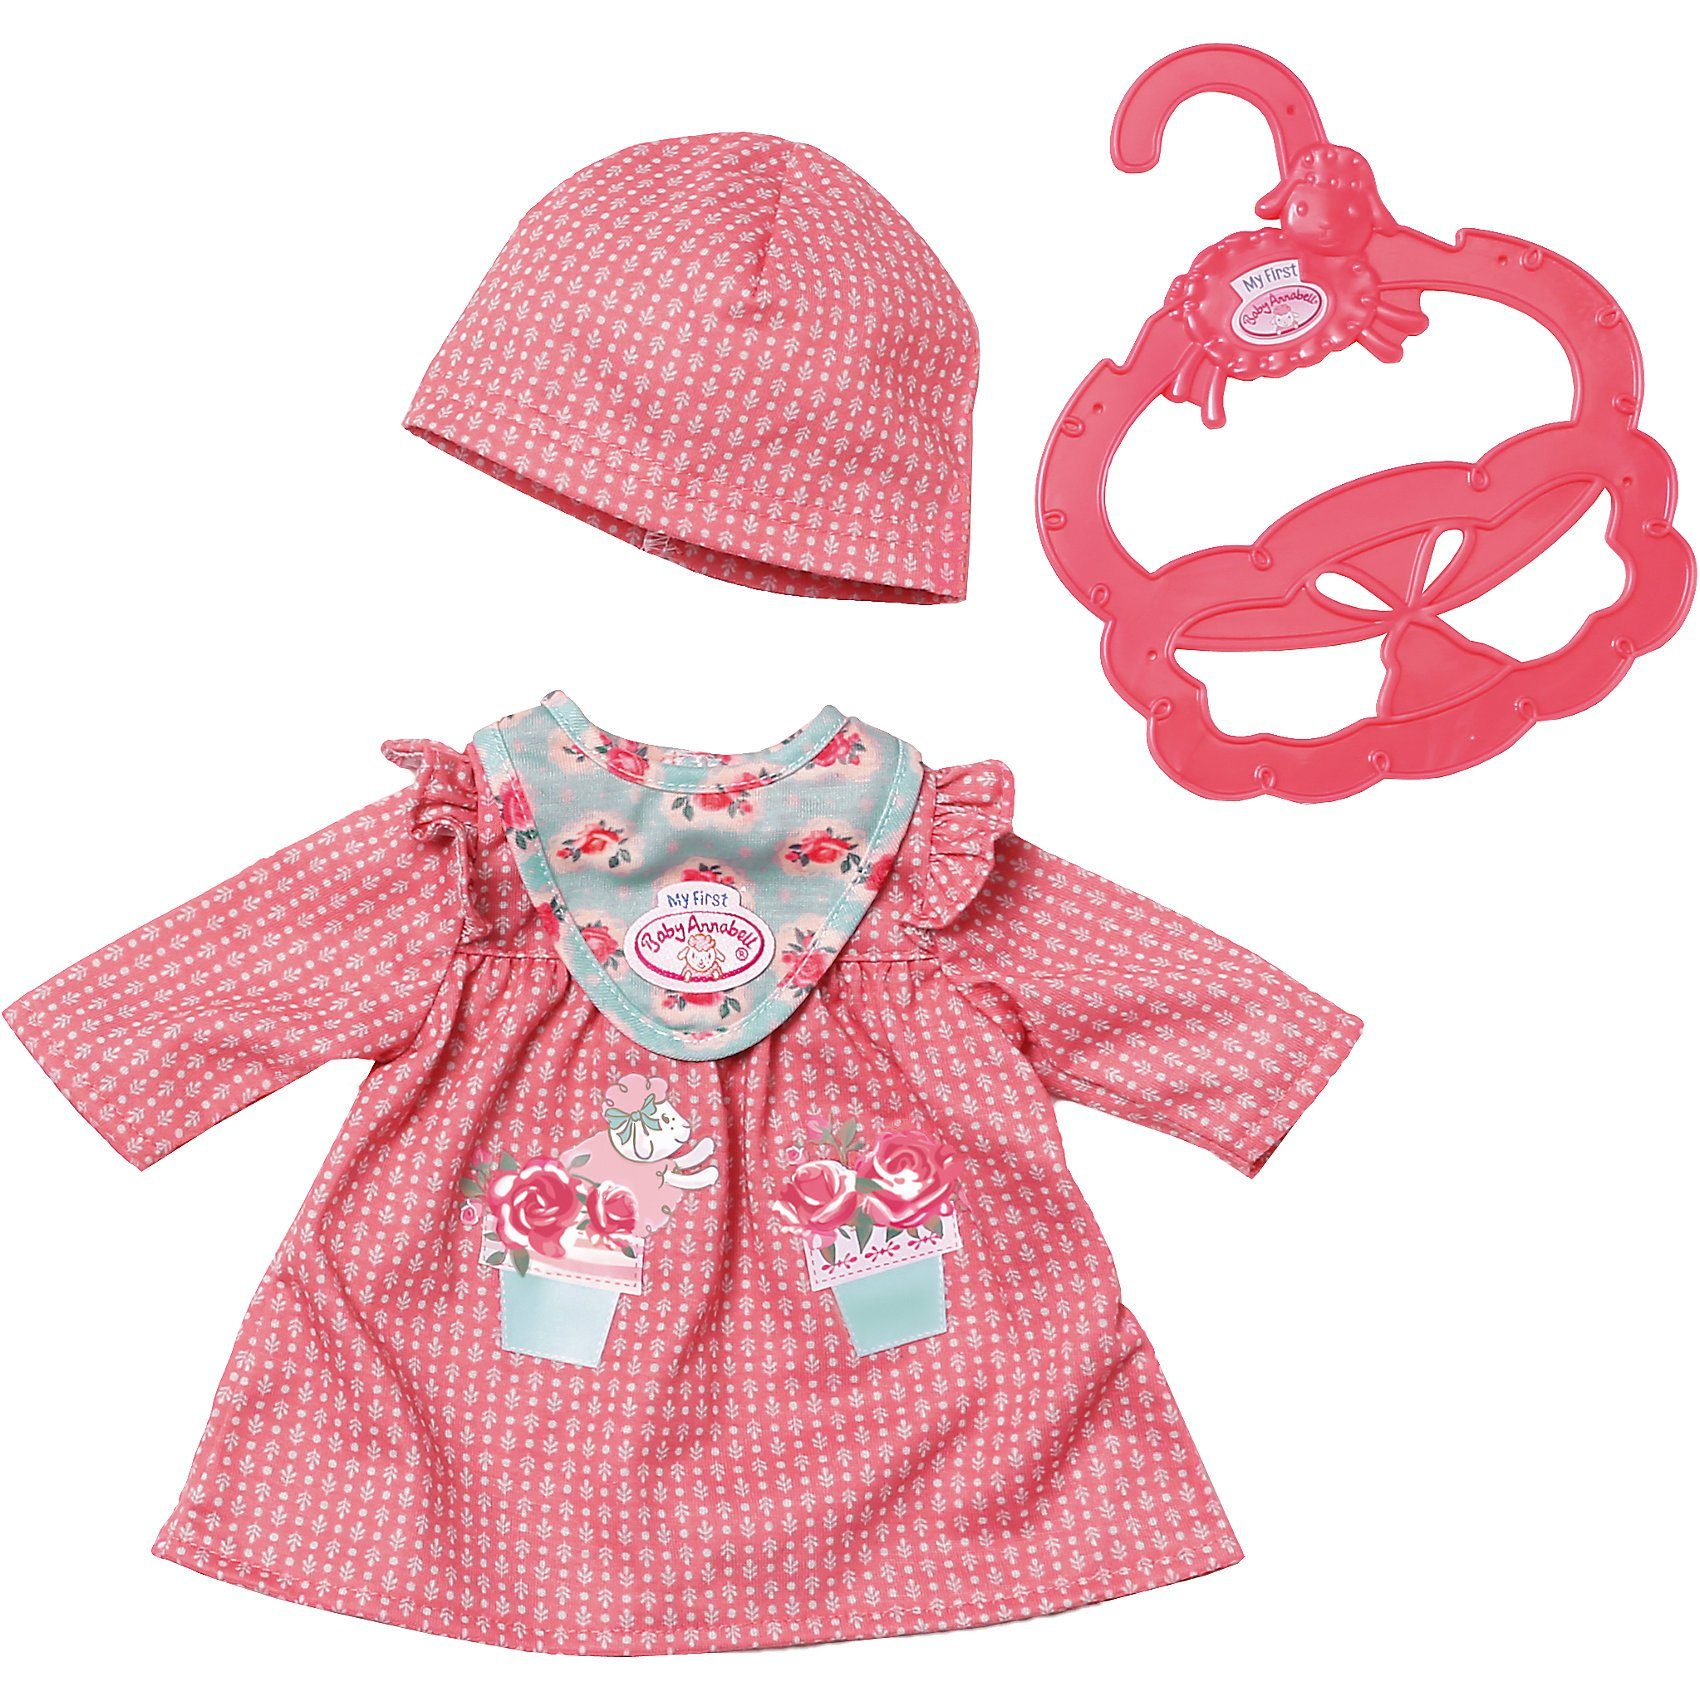 Zapf Creation® My First Baby Annabell® Kuschel-Outfit pink